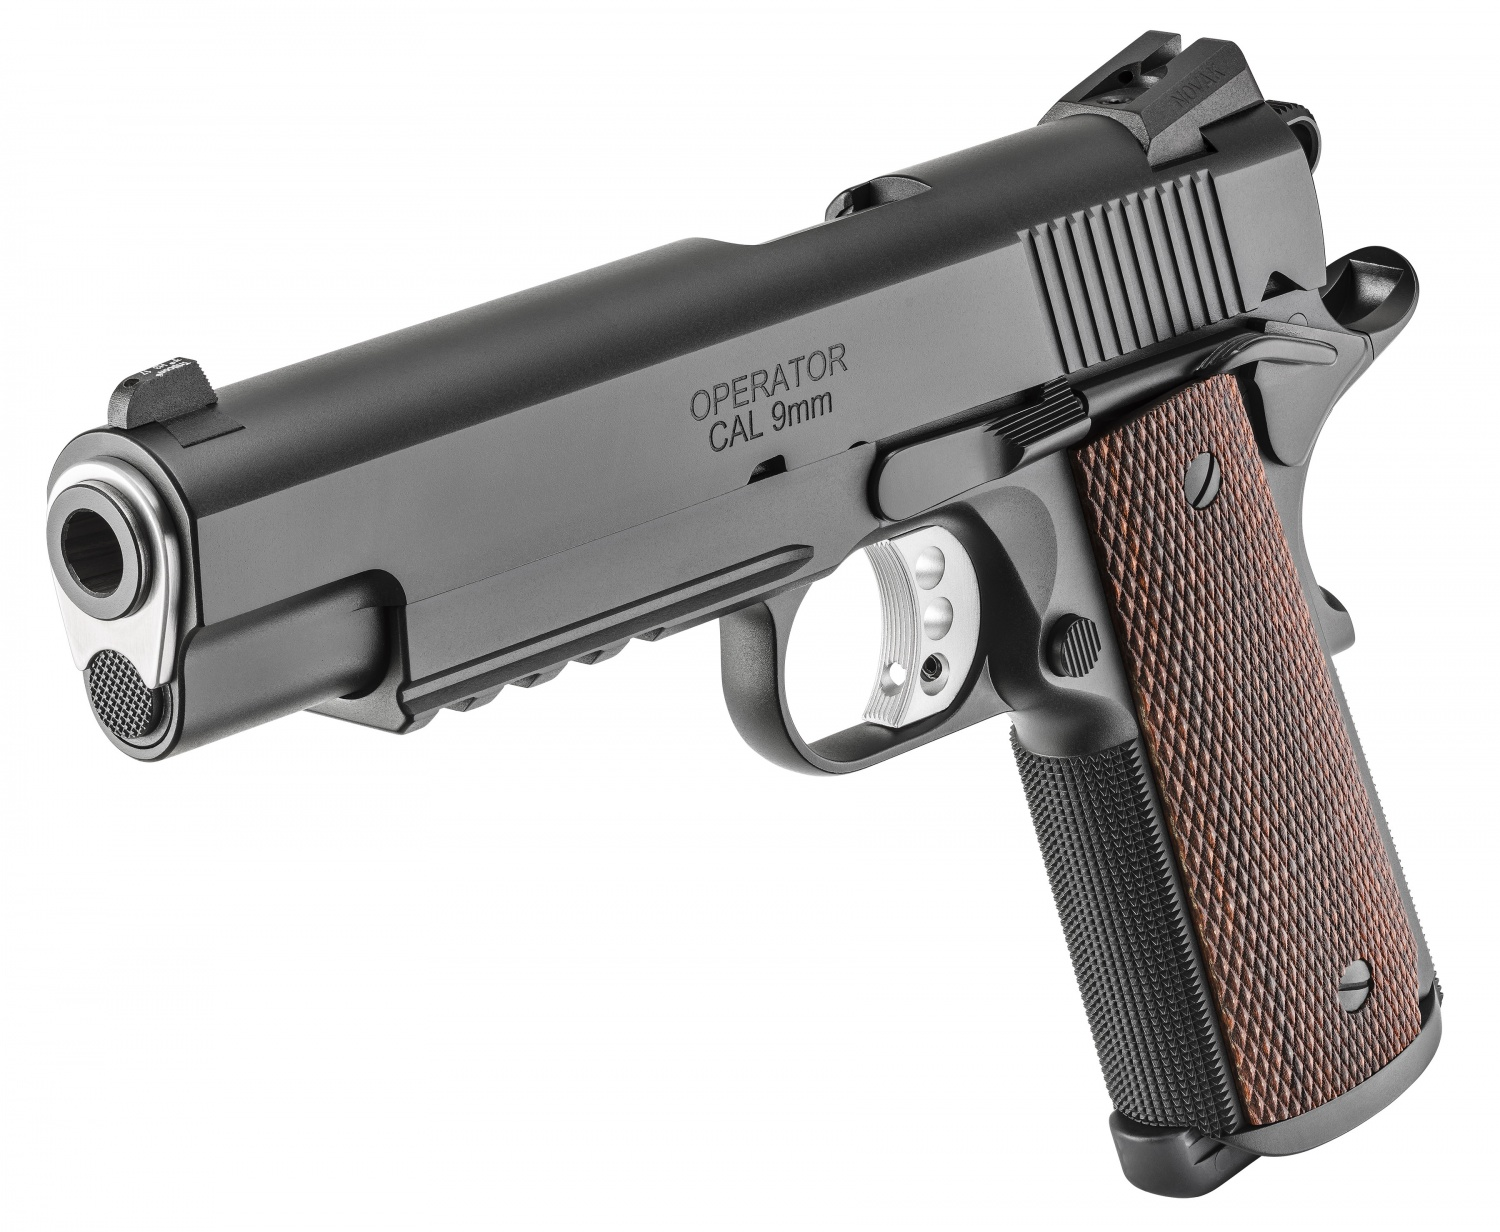 Behind The Scenes Springfield Armory 9mm Operator And